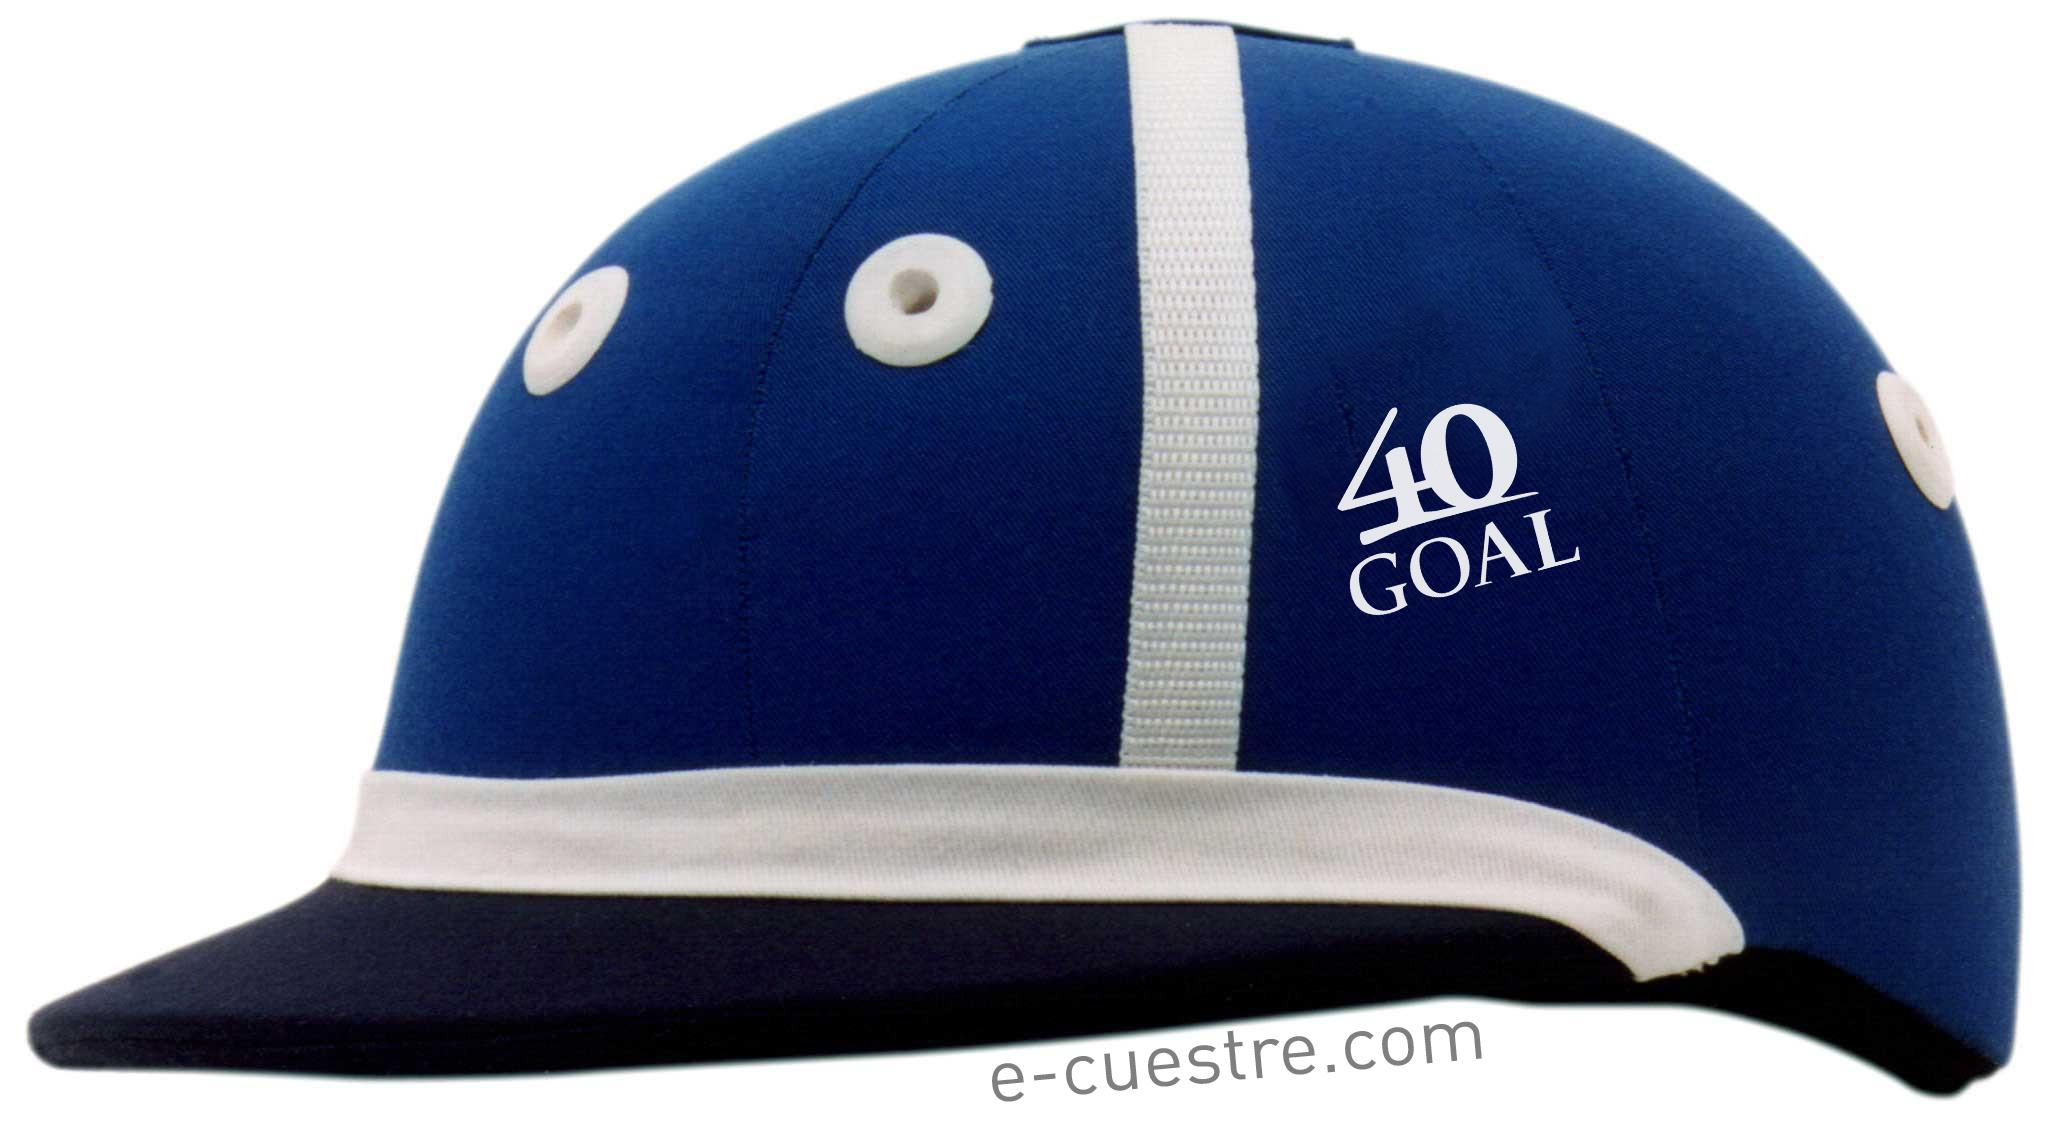 Royal Blue and Black 40GOAL Polo Helmet